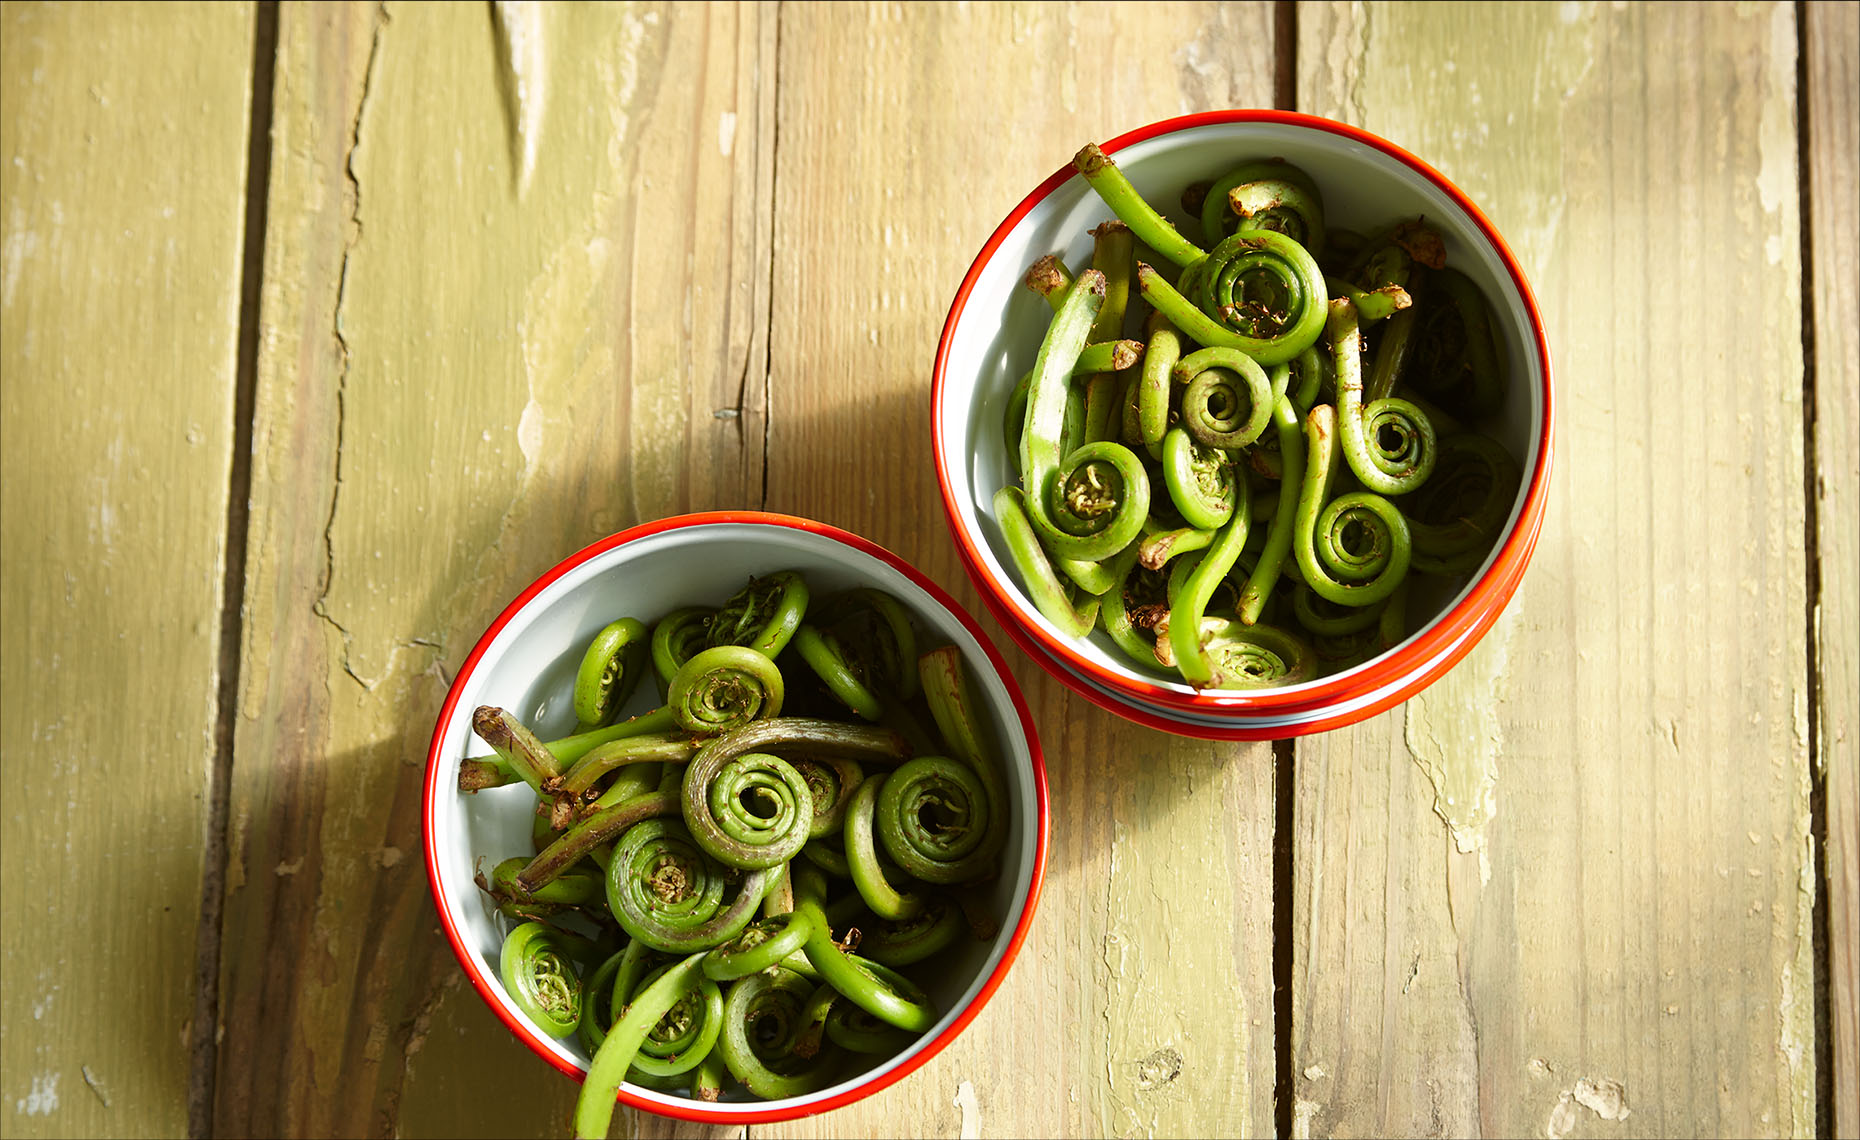 Food Photographer, Vegetable photography, Fruit photography | Pohuski Studios,  Fresh Fiddleheads